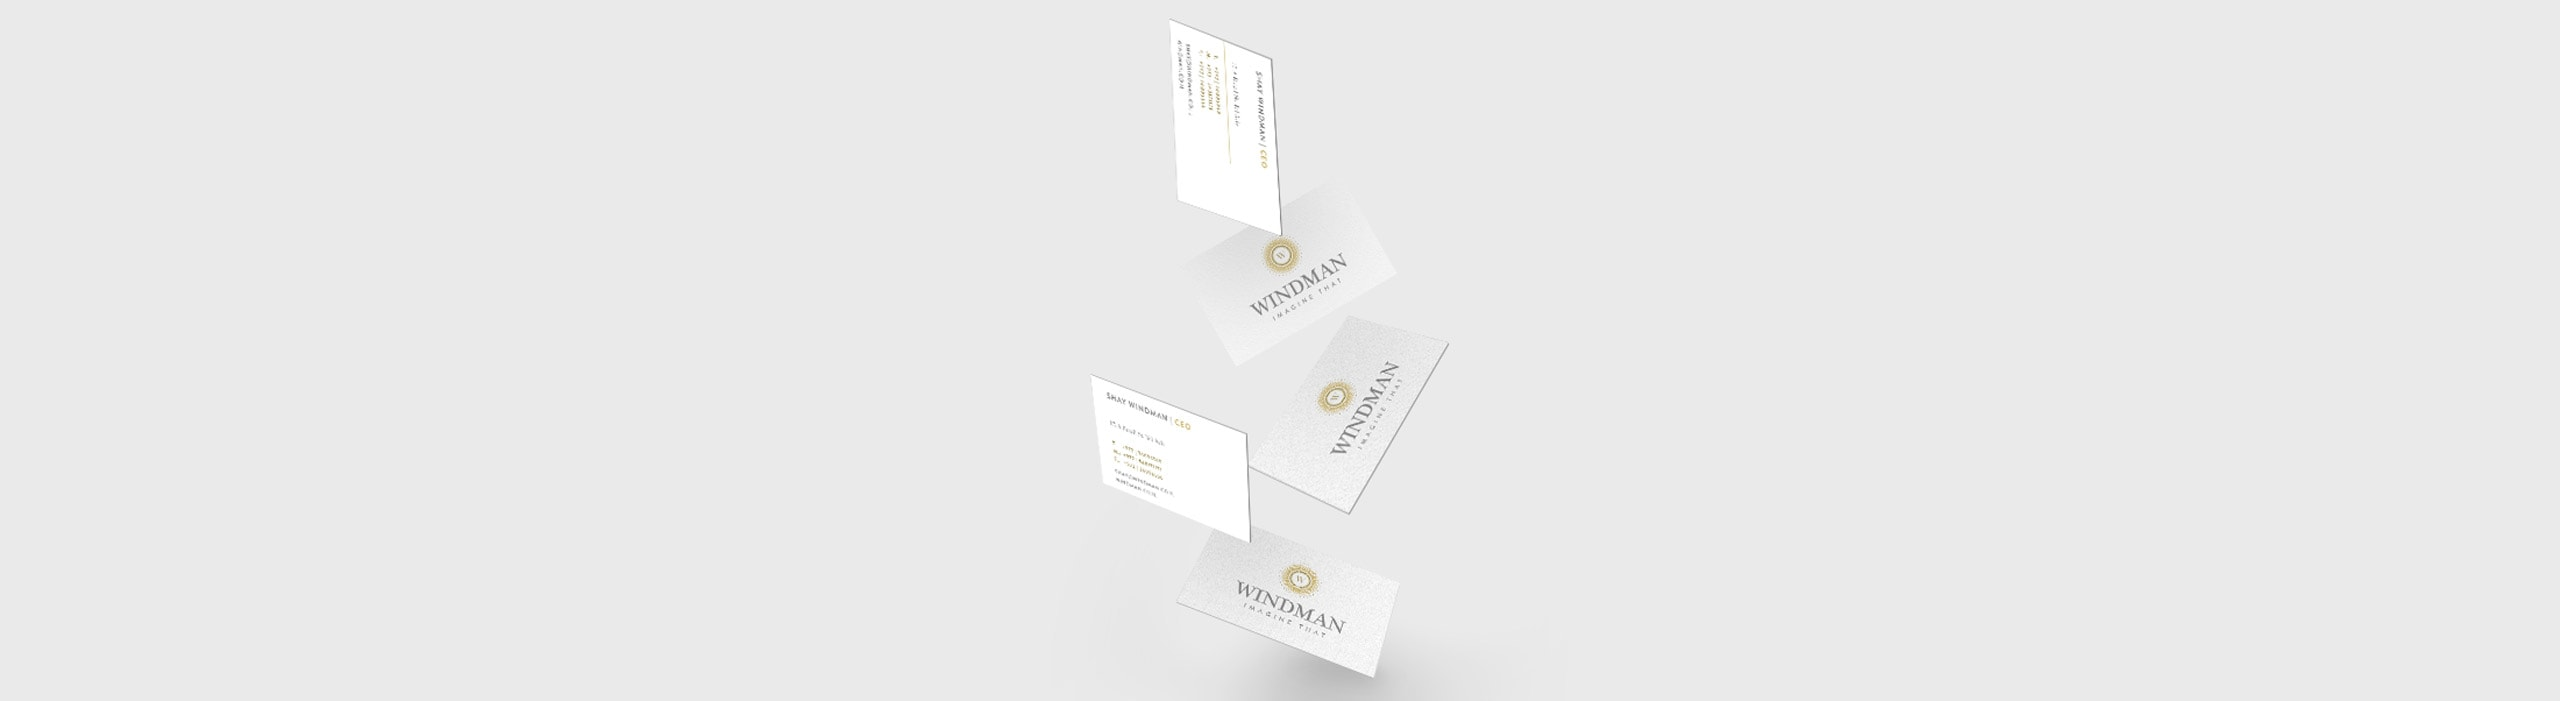 Windman - natie-windman-business-cards-design - Natie Branding Agency